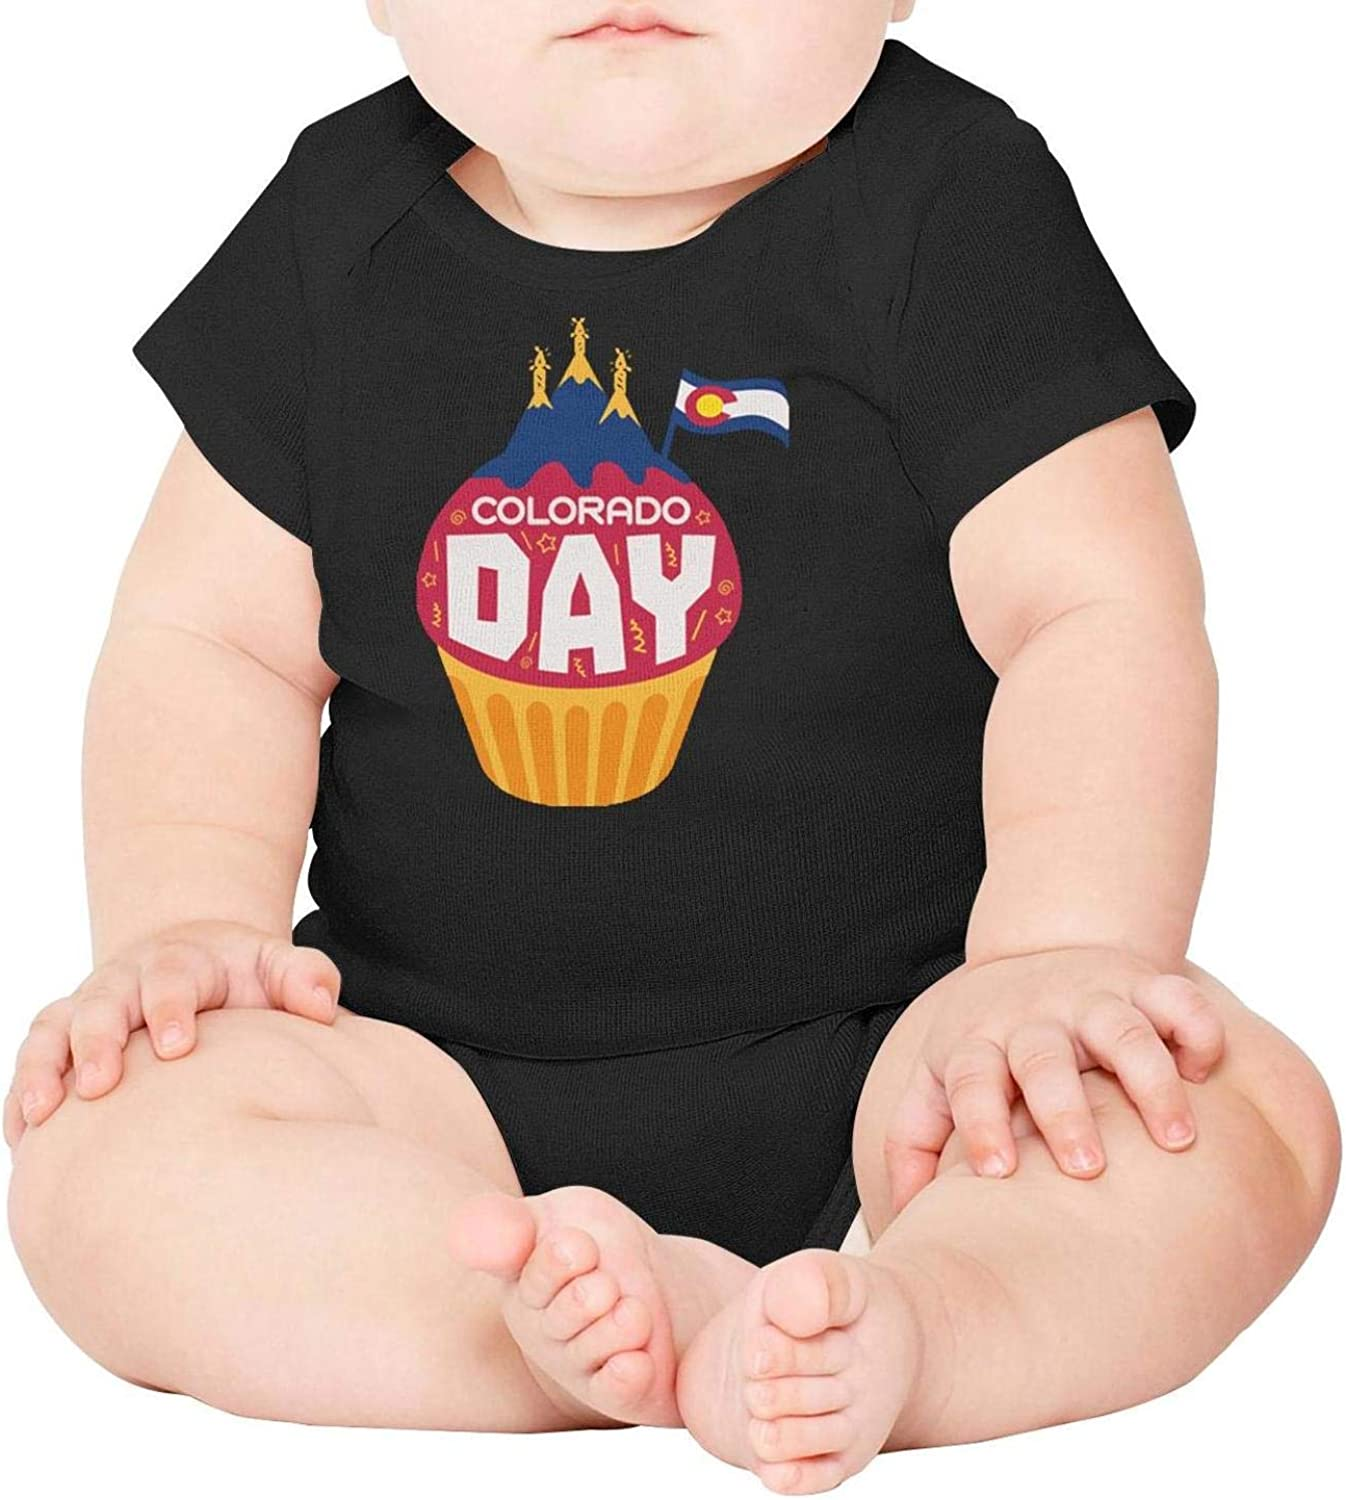 Baby Onesies Celebrate Colorado Day 100/% Cotton Newborn Baby Clothes Cute Short Sleeve Bodysuit